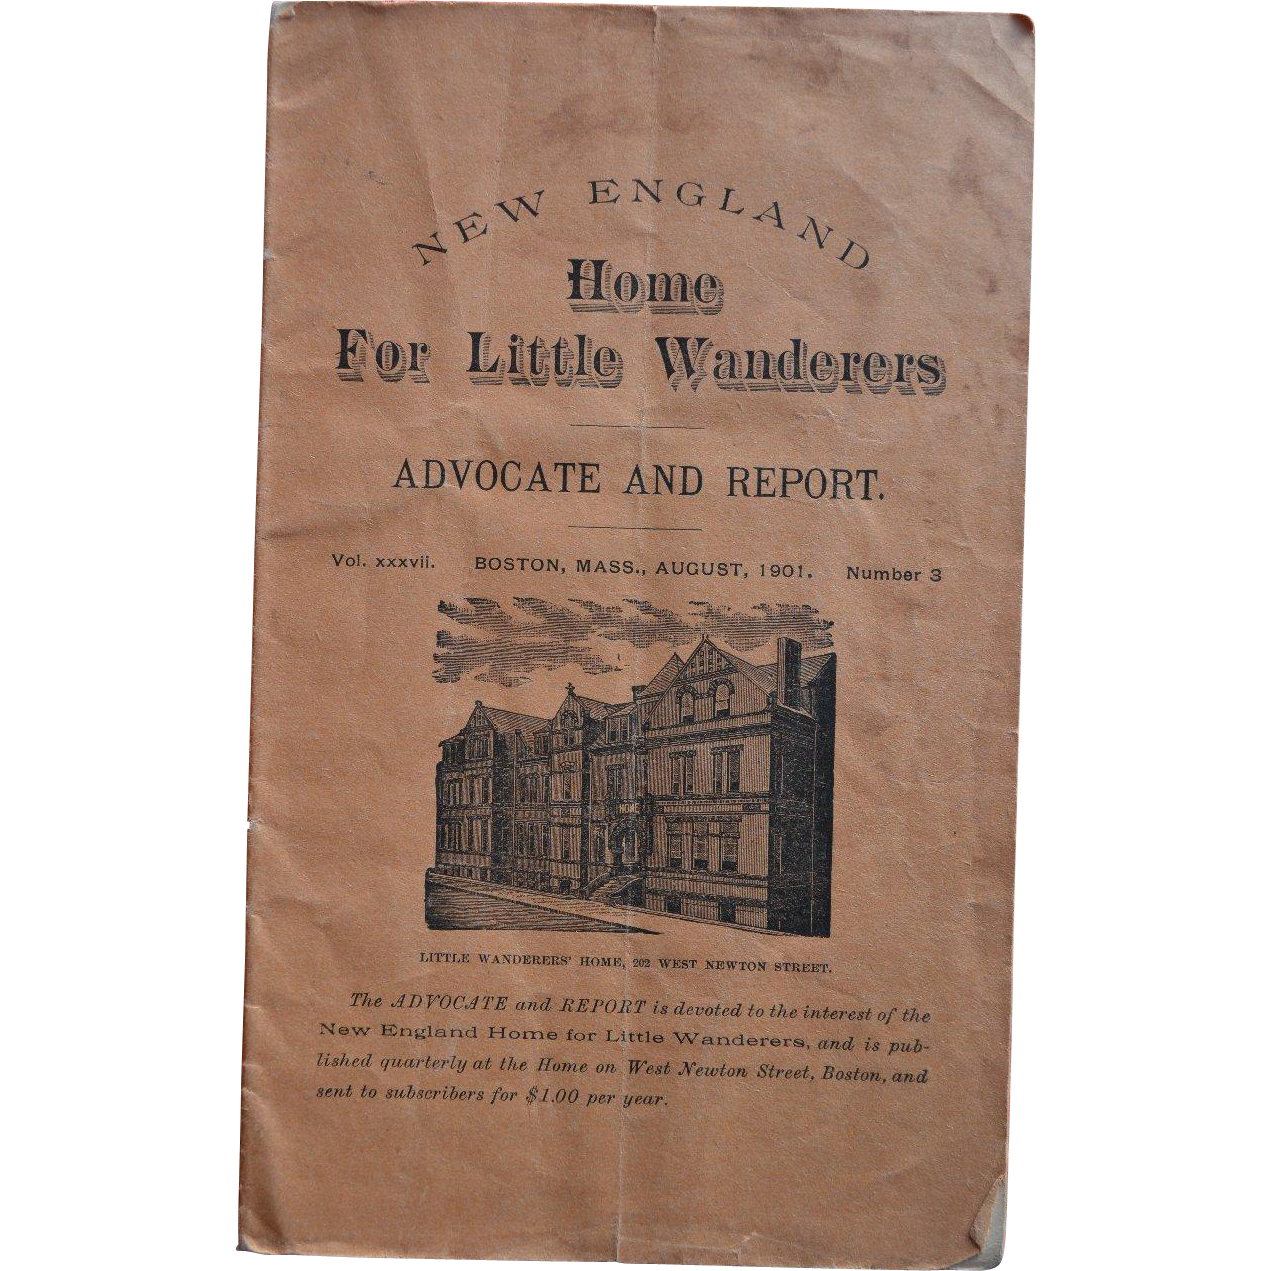 1901 New England Home for Little Wanderers, Boston, Mass ...